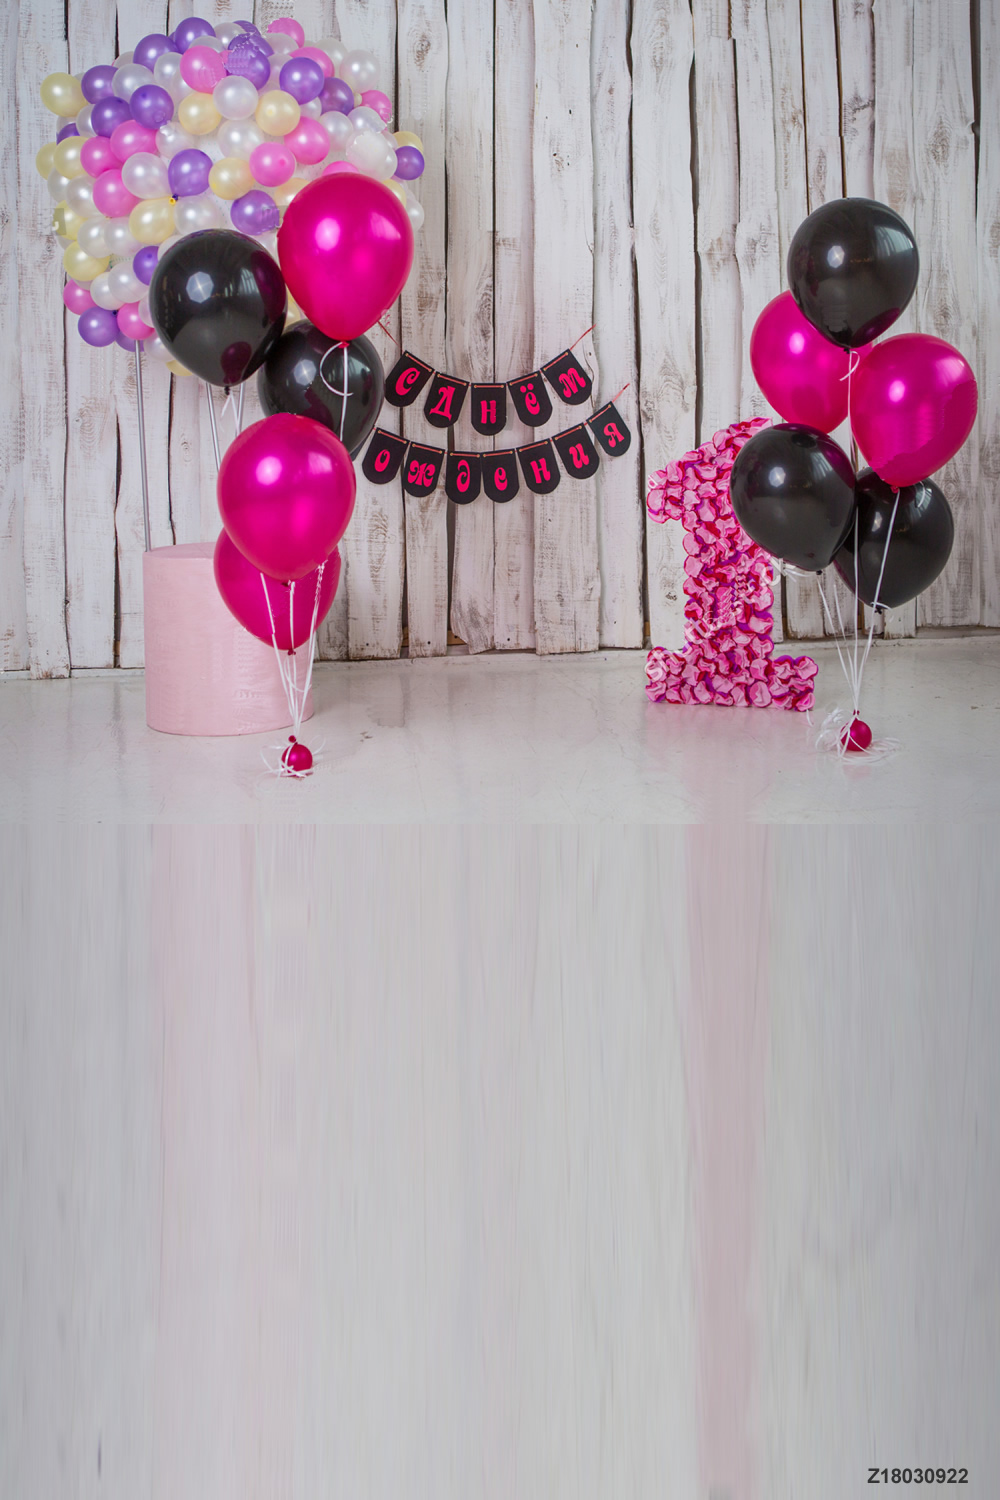 Photo Booth Backdrop - Makoodle Birthday photo booth backdrop